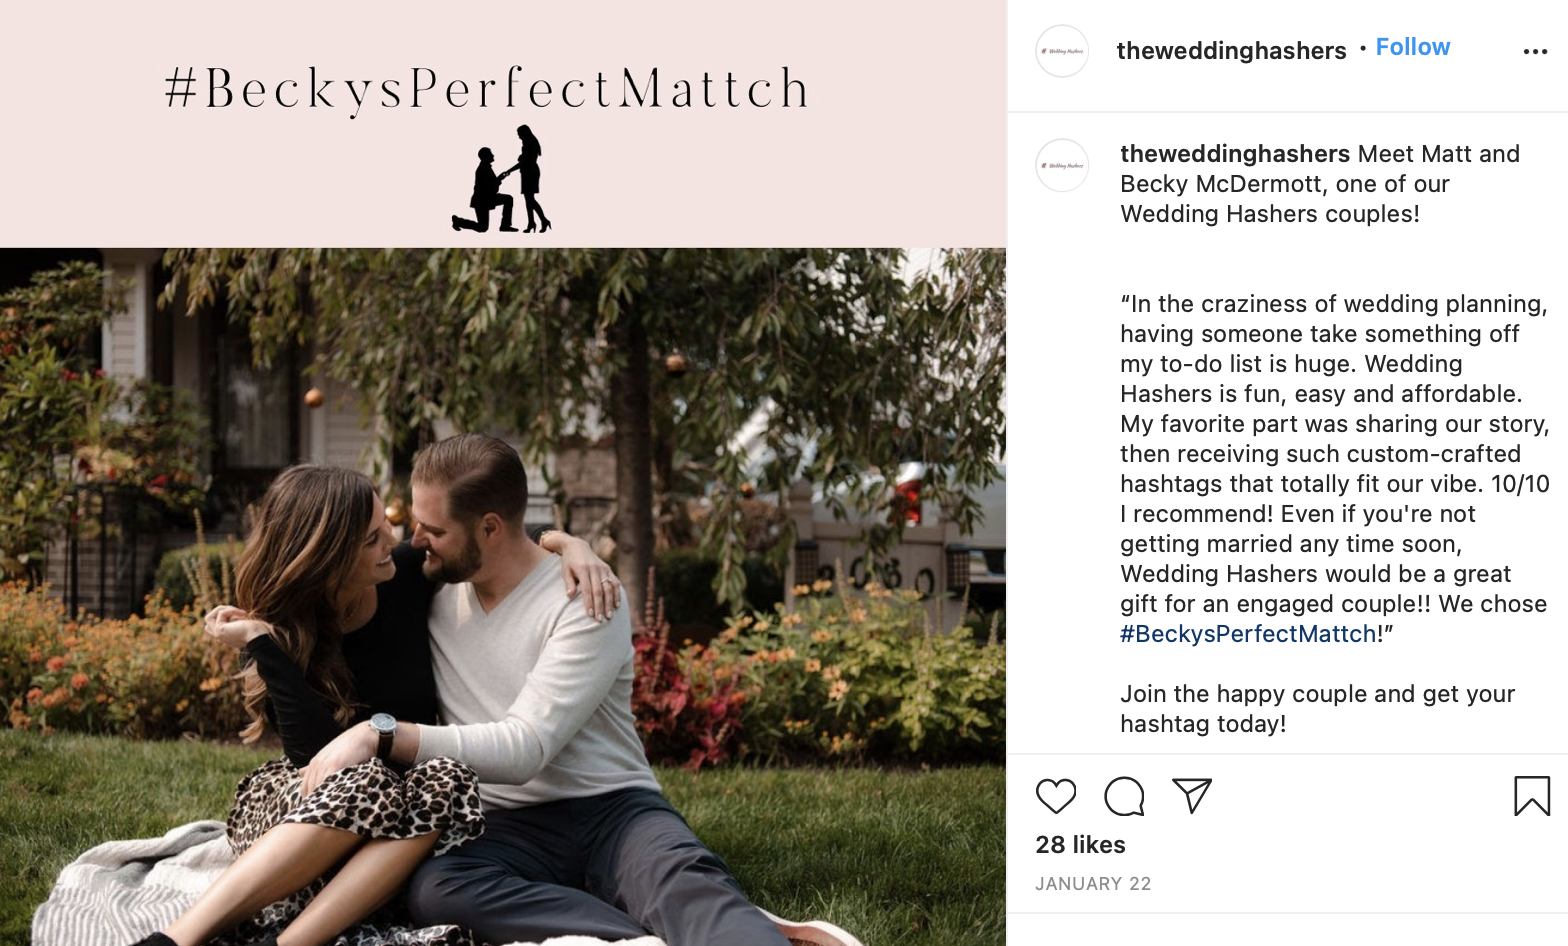 couple from wedding hashers that got their wedding hashtag